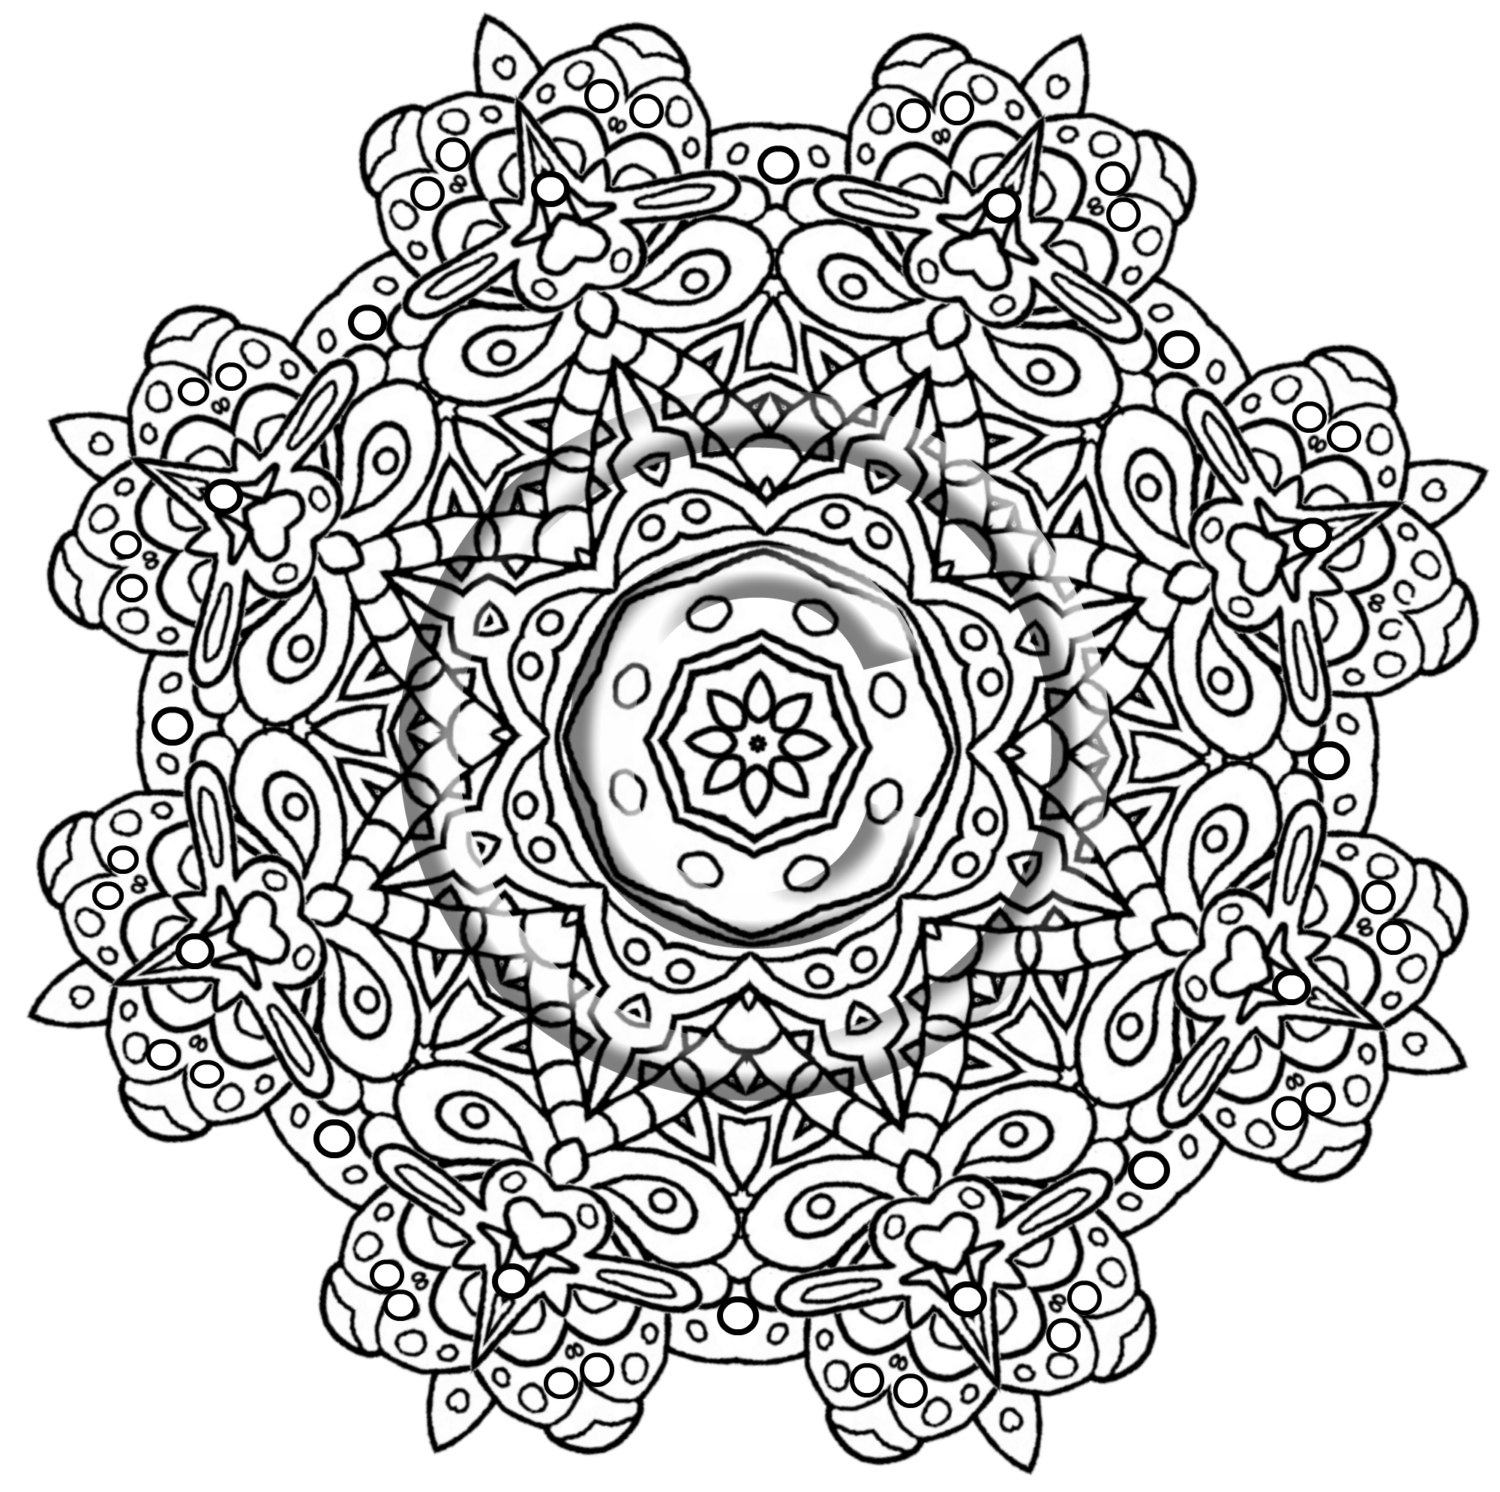 1500x1492 Intricate Mandala Coloring Pages Ivector Co